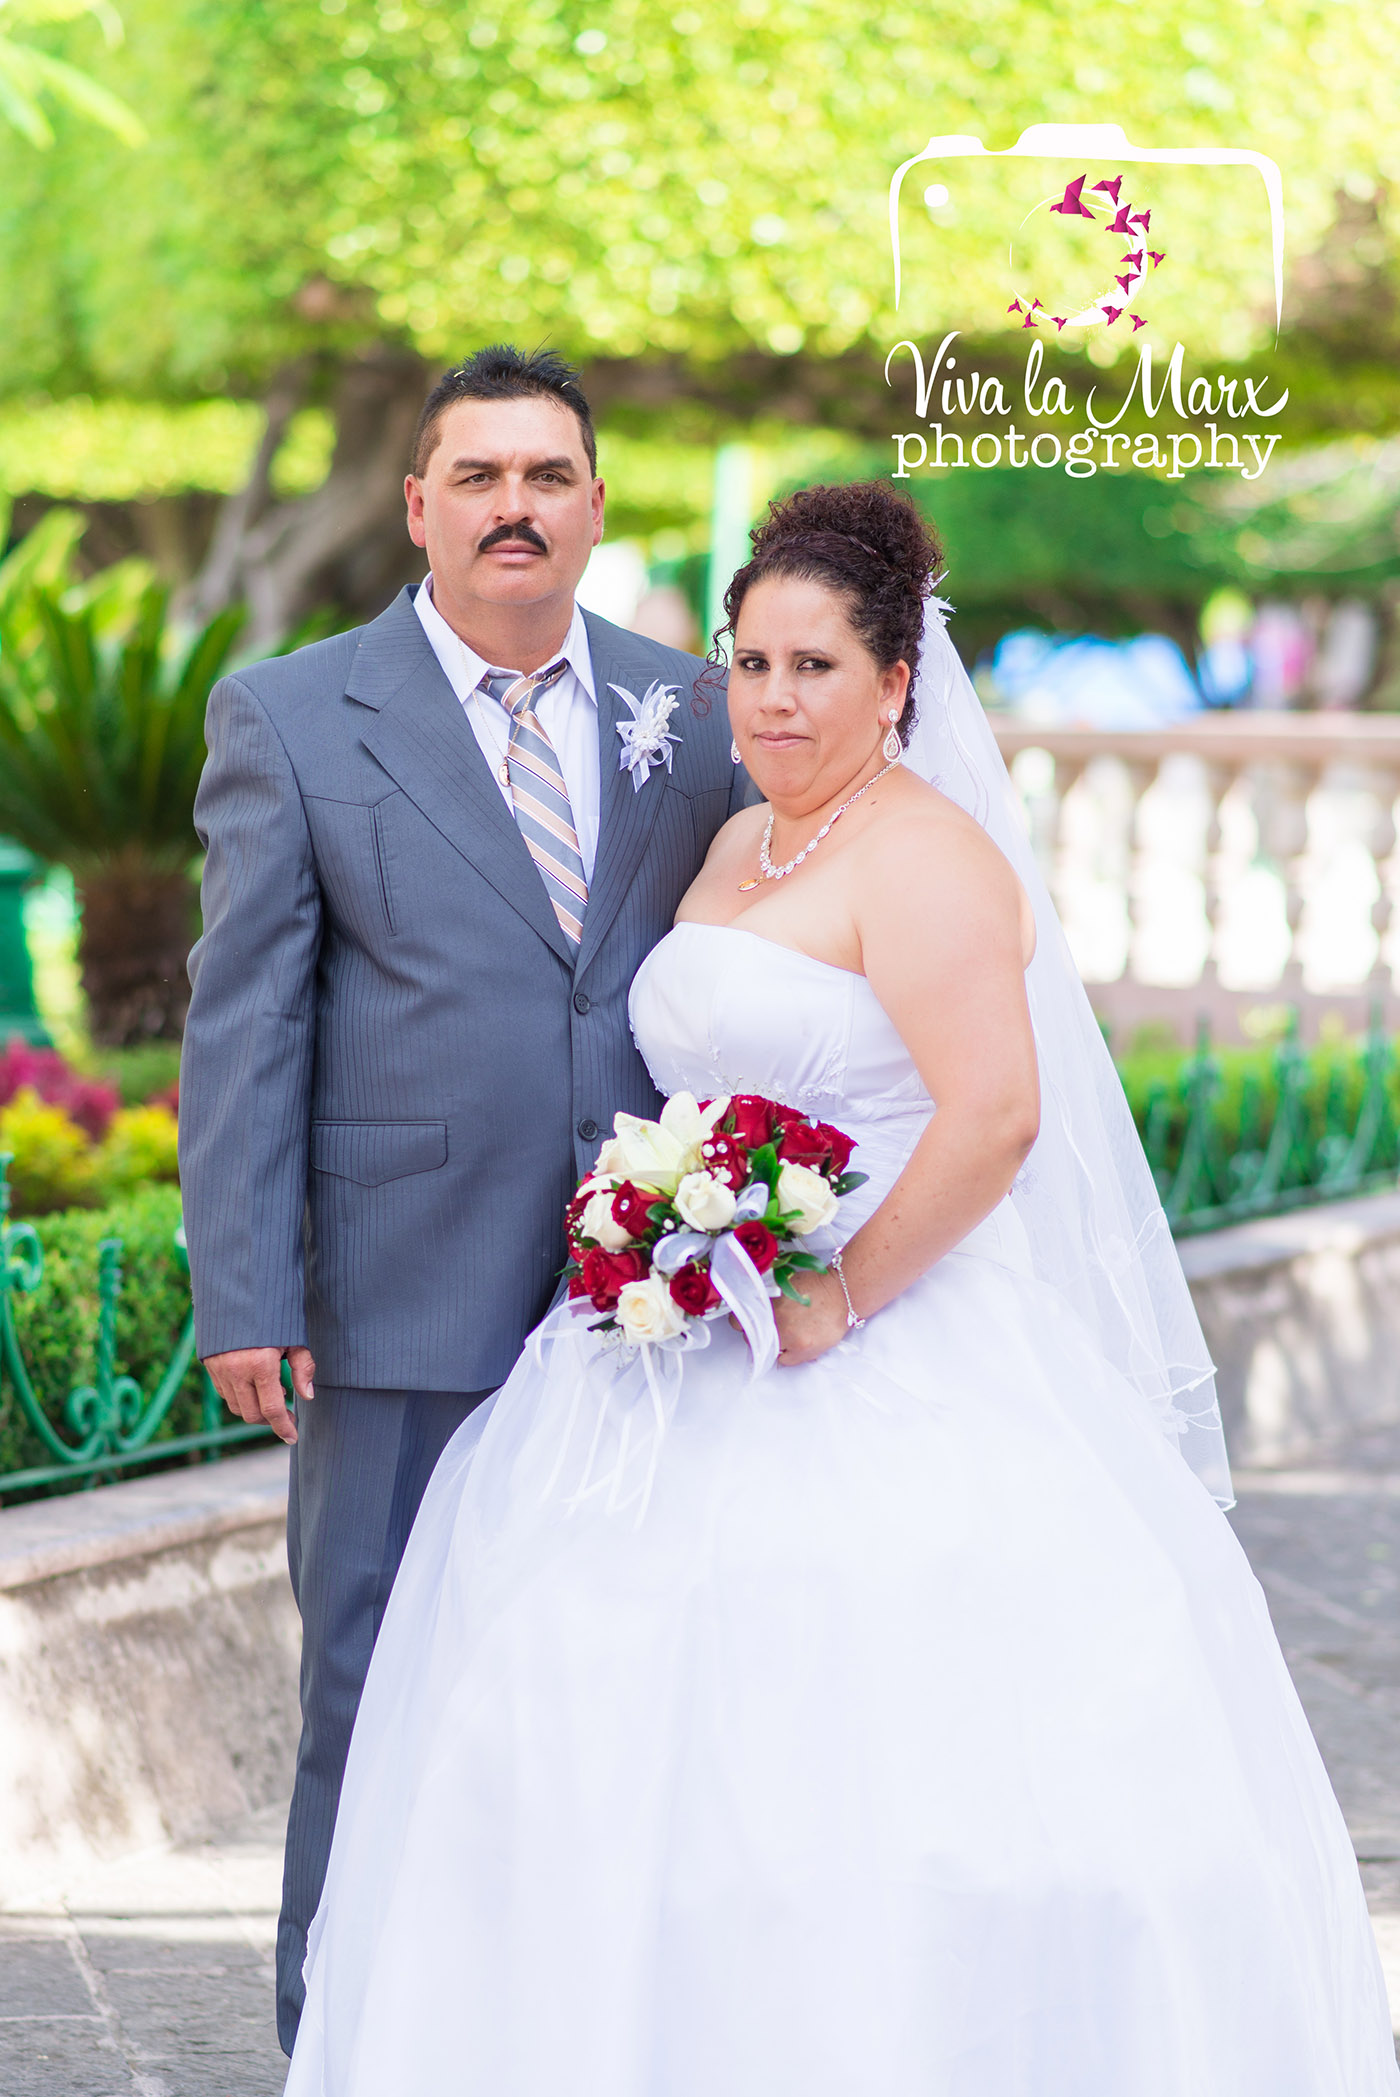 Catalina and Jose decided to join their lives in marriage after 5 years of having met, and two children later. They are a handful, however, they are proof that a new life can be started when you really try.